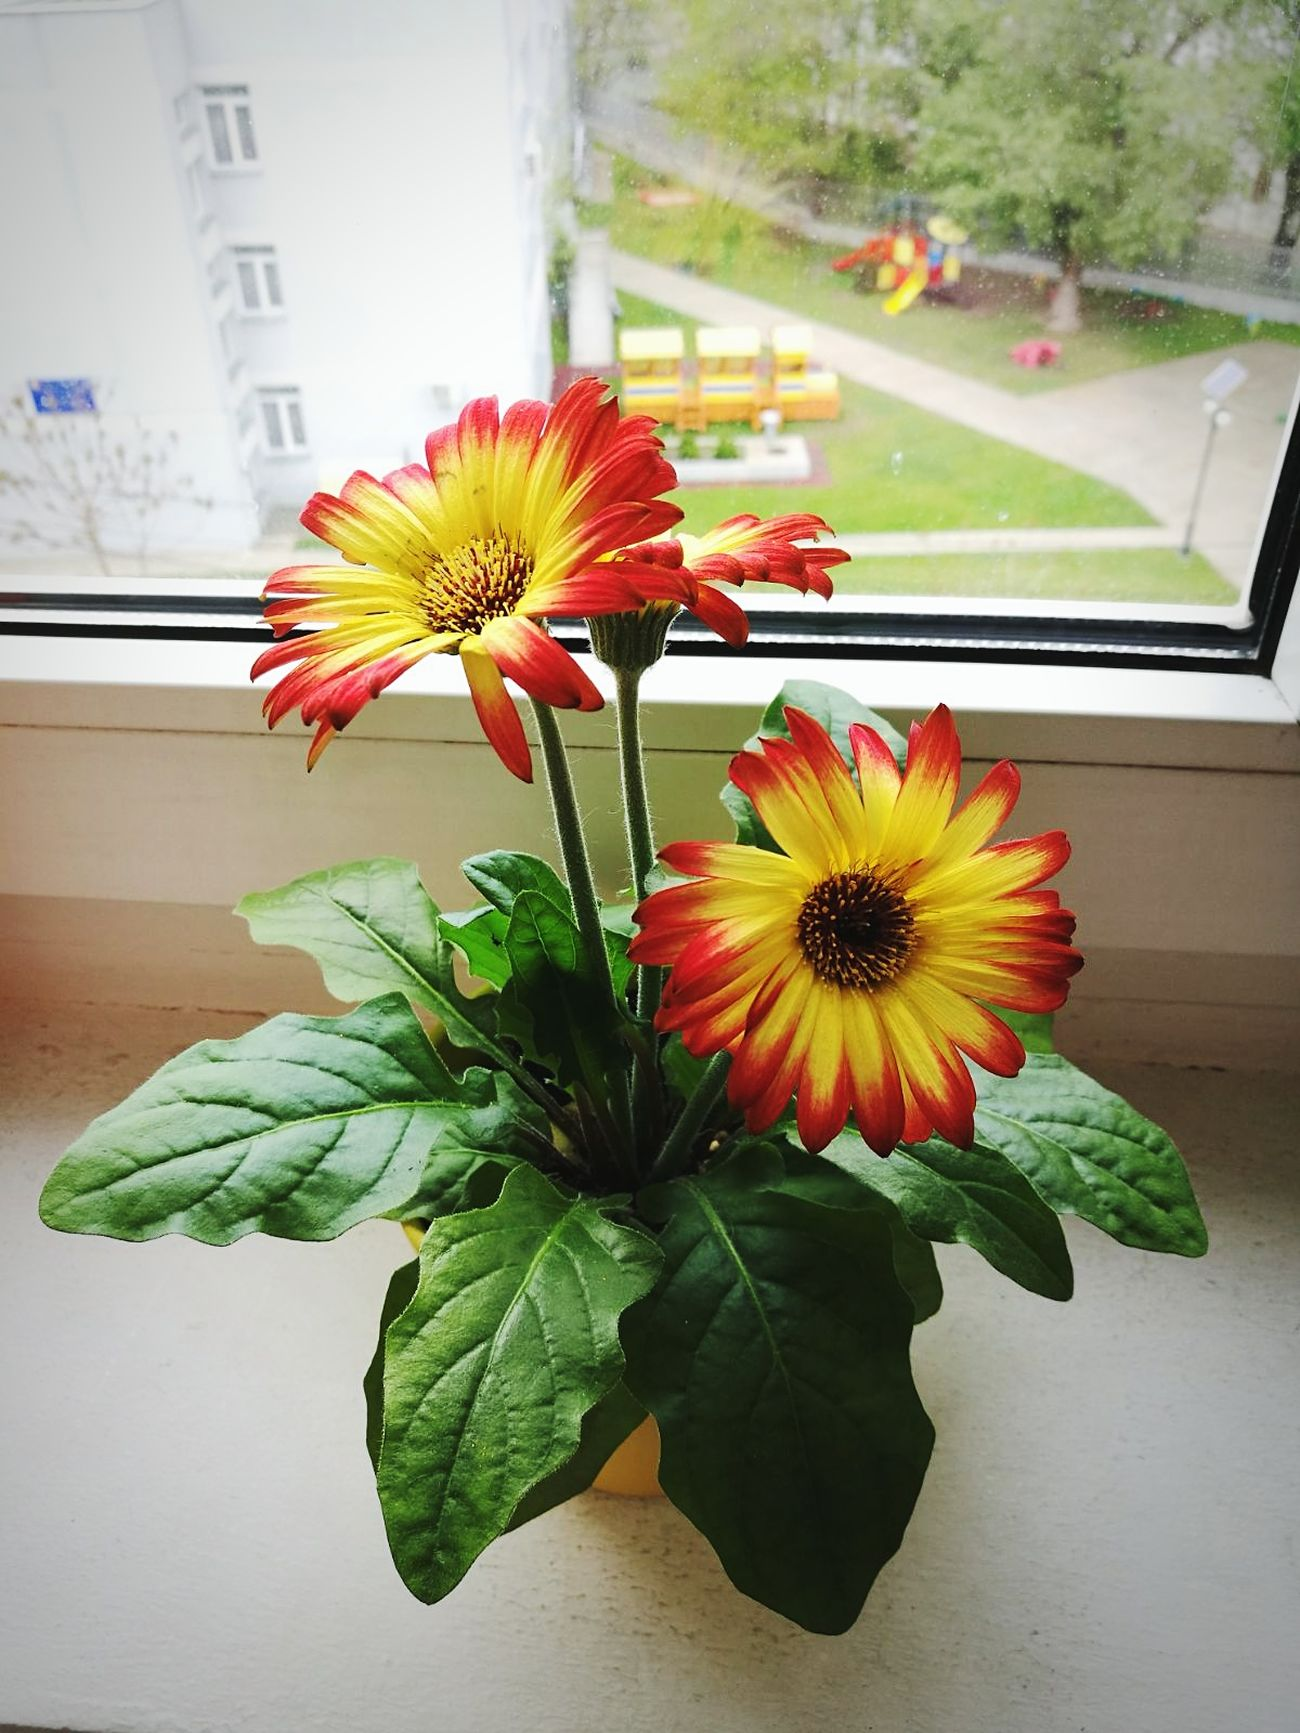 Flower Flower Power🌼 Petals🌸 Freshness Plant Fragility Day Nature No People Growth Indoors  Window Yellow & Red